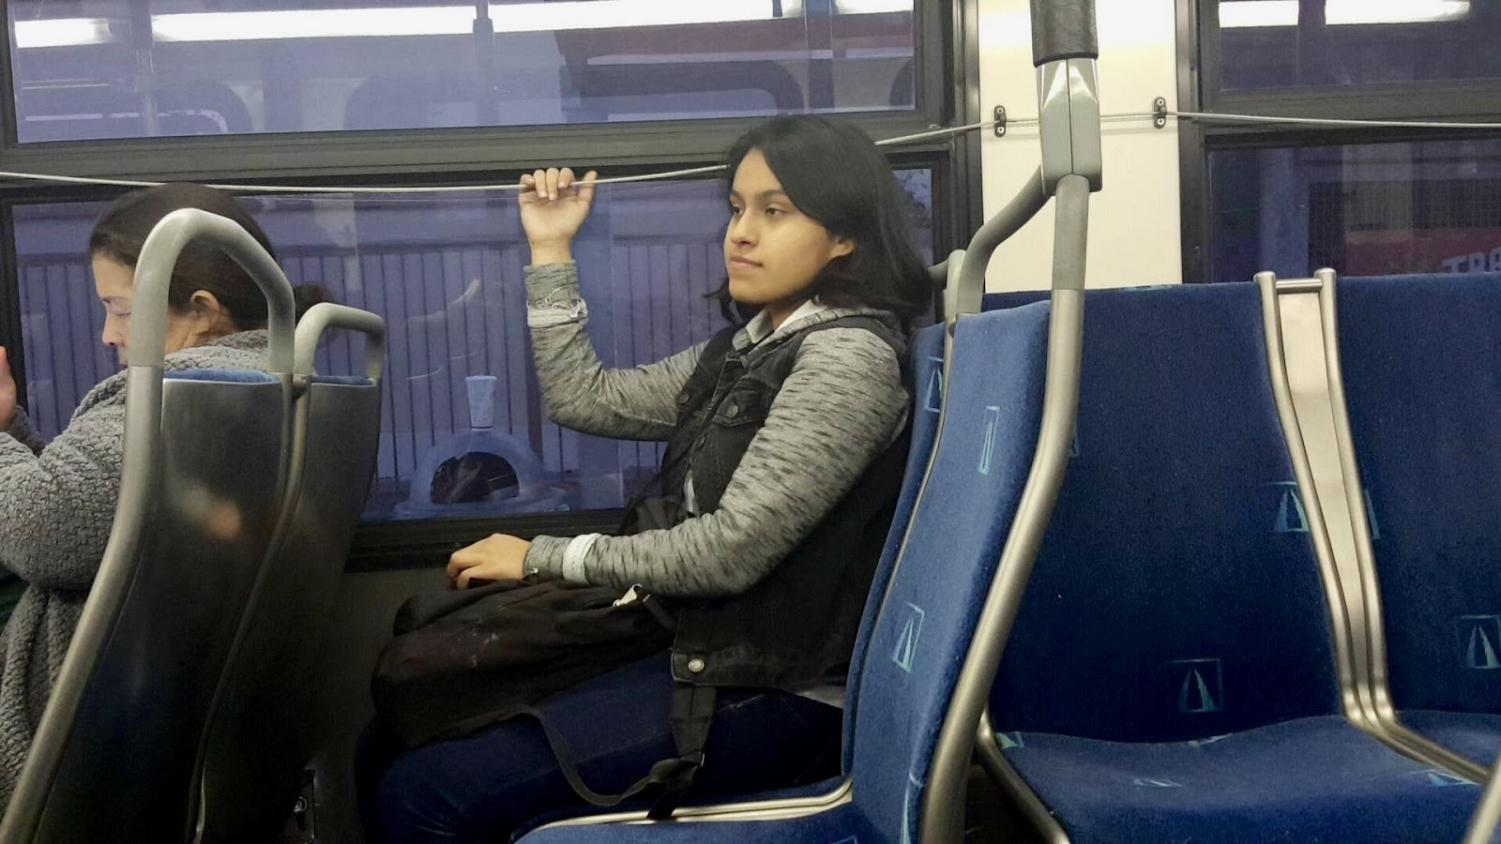 Michelle Martinez riding the bus after school is glad that the bus isn't full. Photo taken at 4:40 p.m. Dec. 3, 2018.